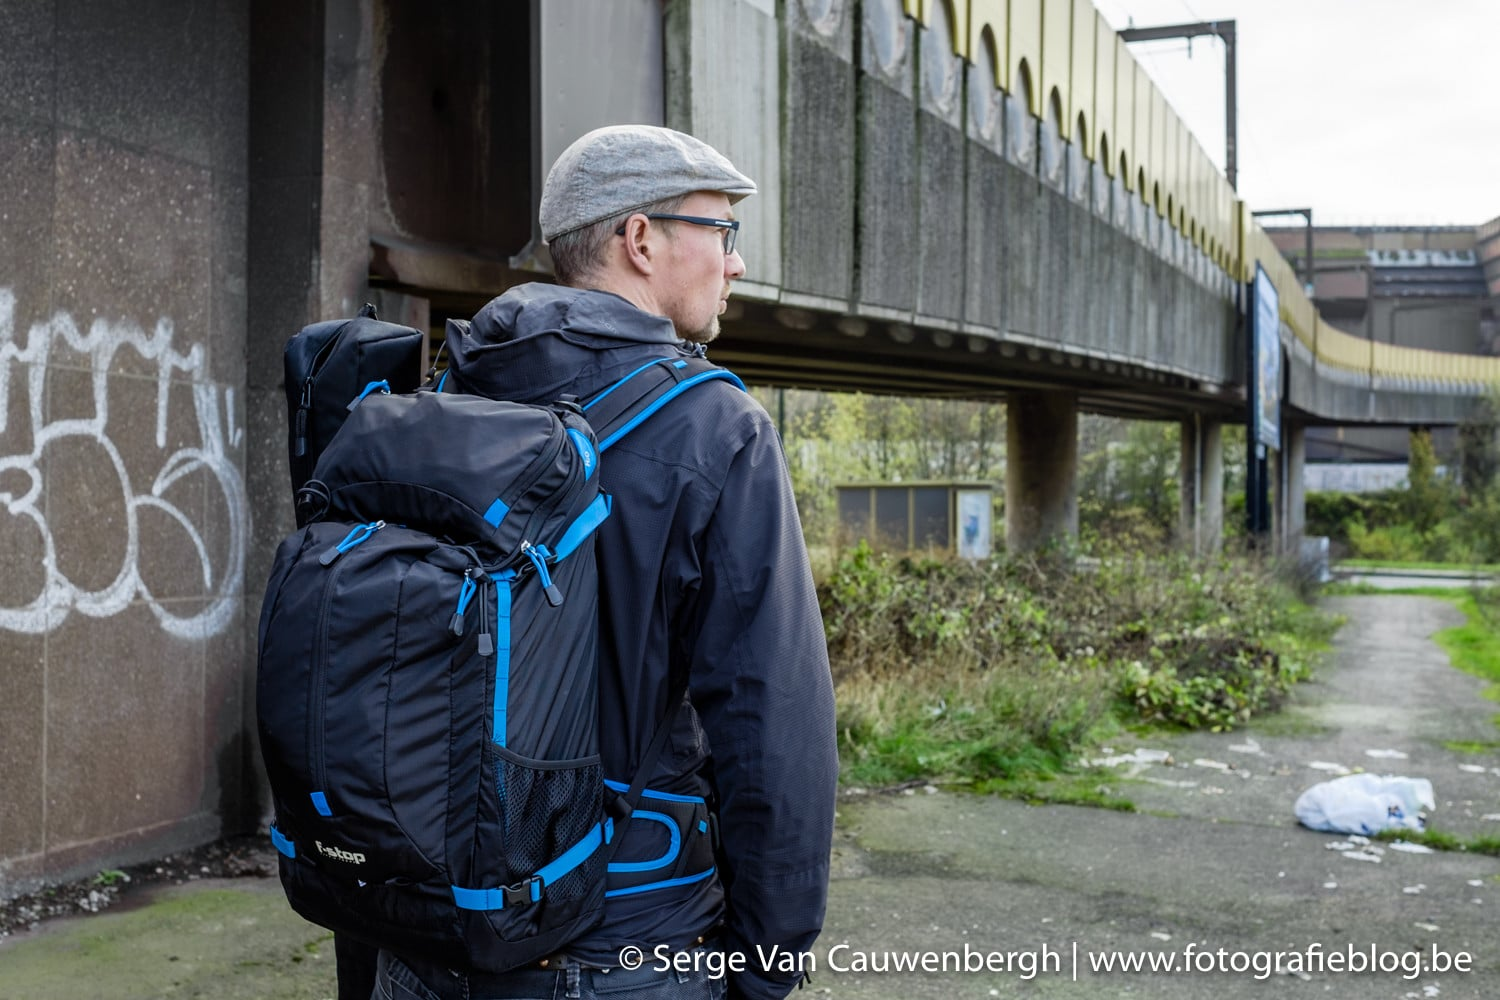 My trusted F-Stop Loka UL backpack and me at the foot of the hill overlooking Charleroi.